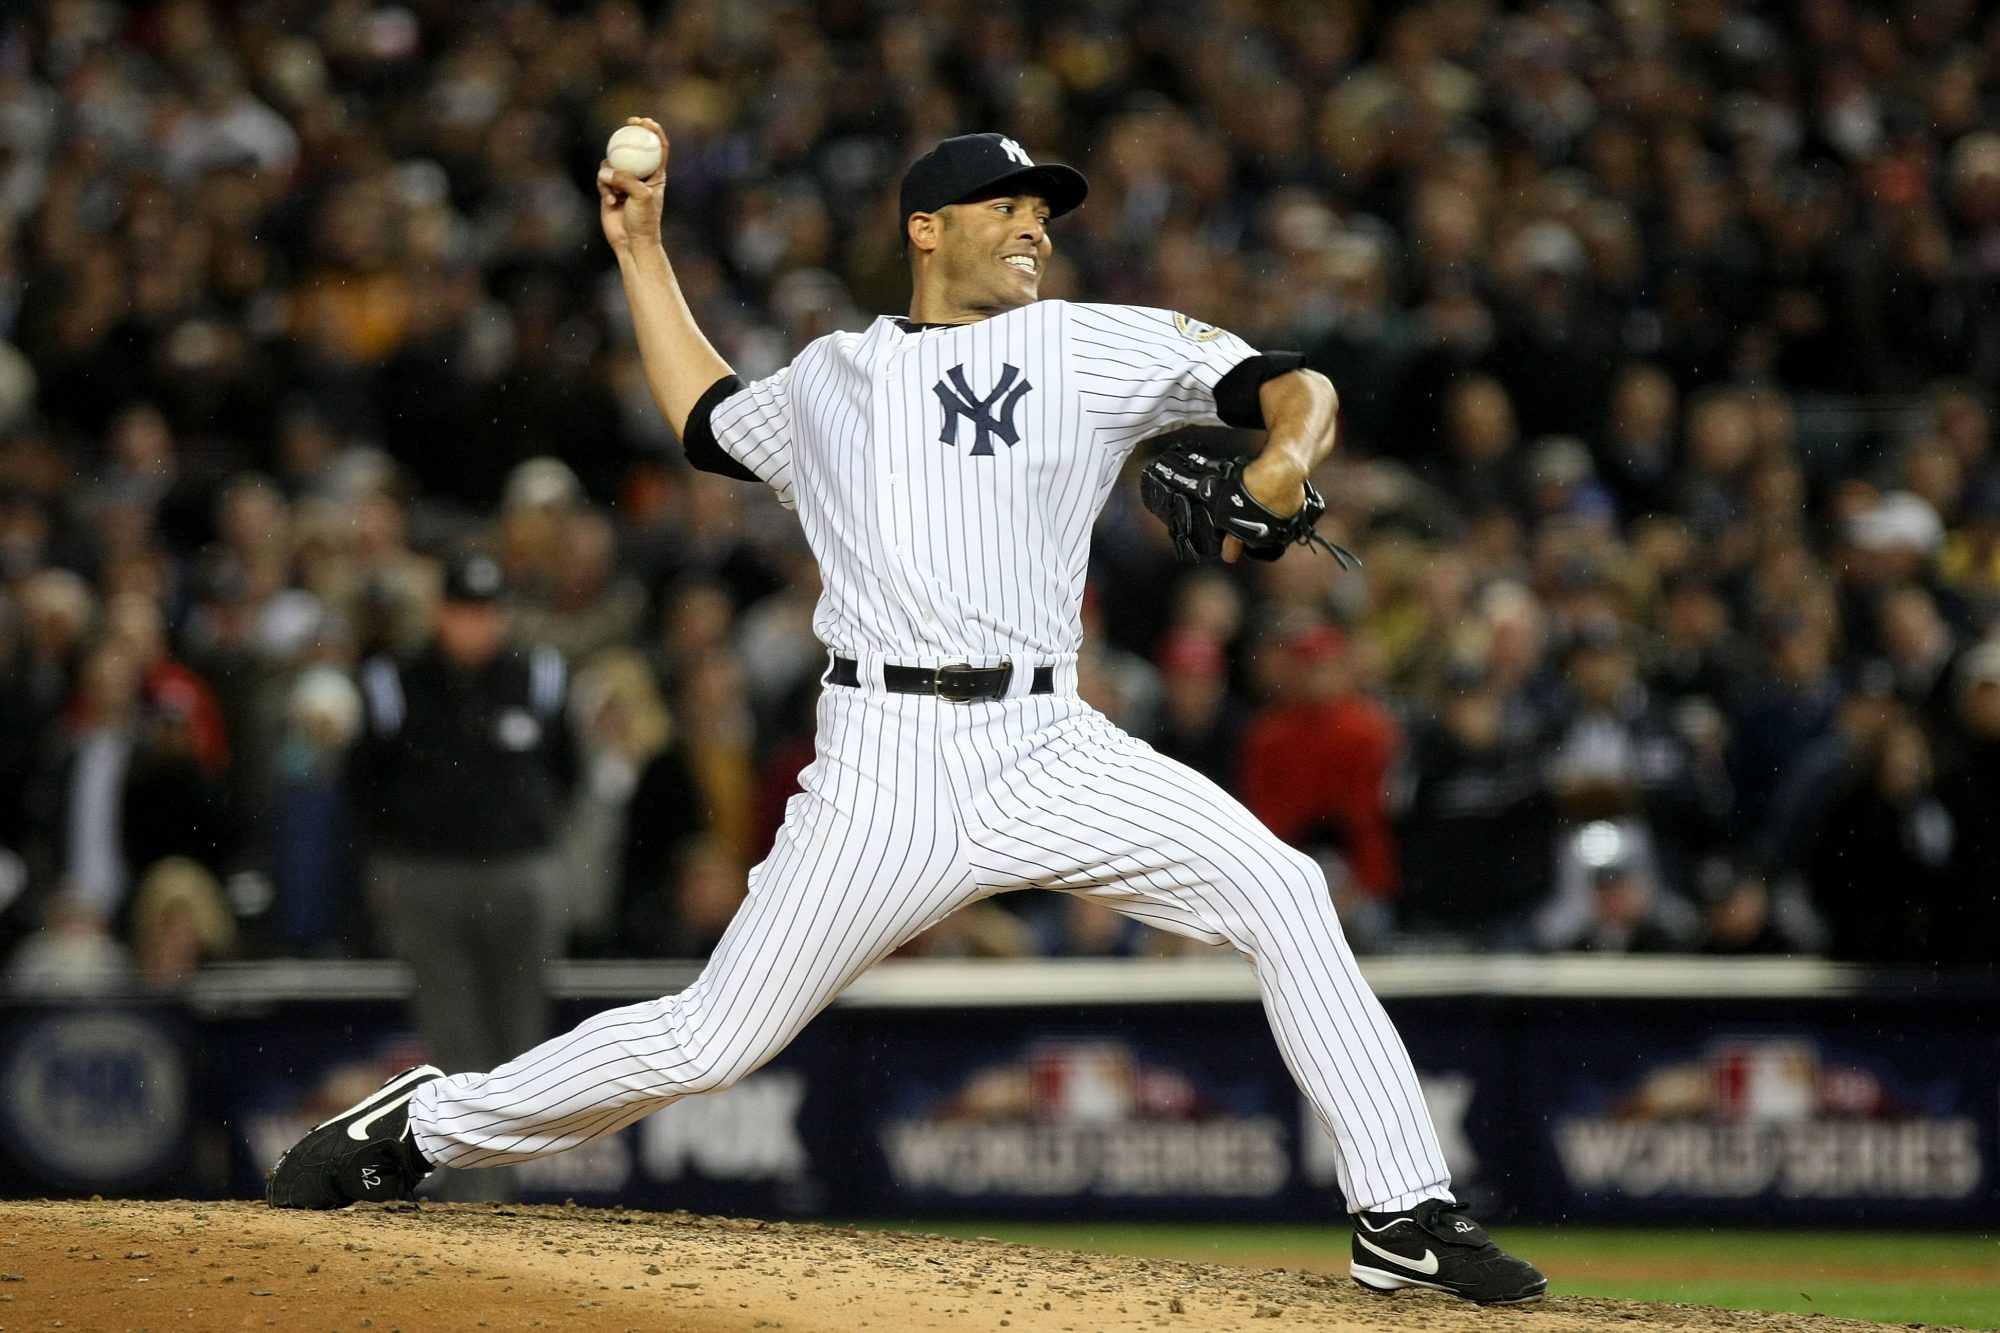 The former New York Yankee is the first person elected unanimously to the Baseball Hall of Fame.